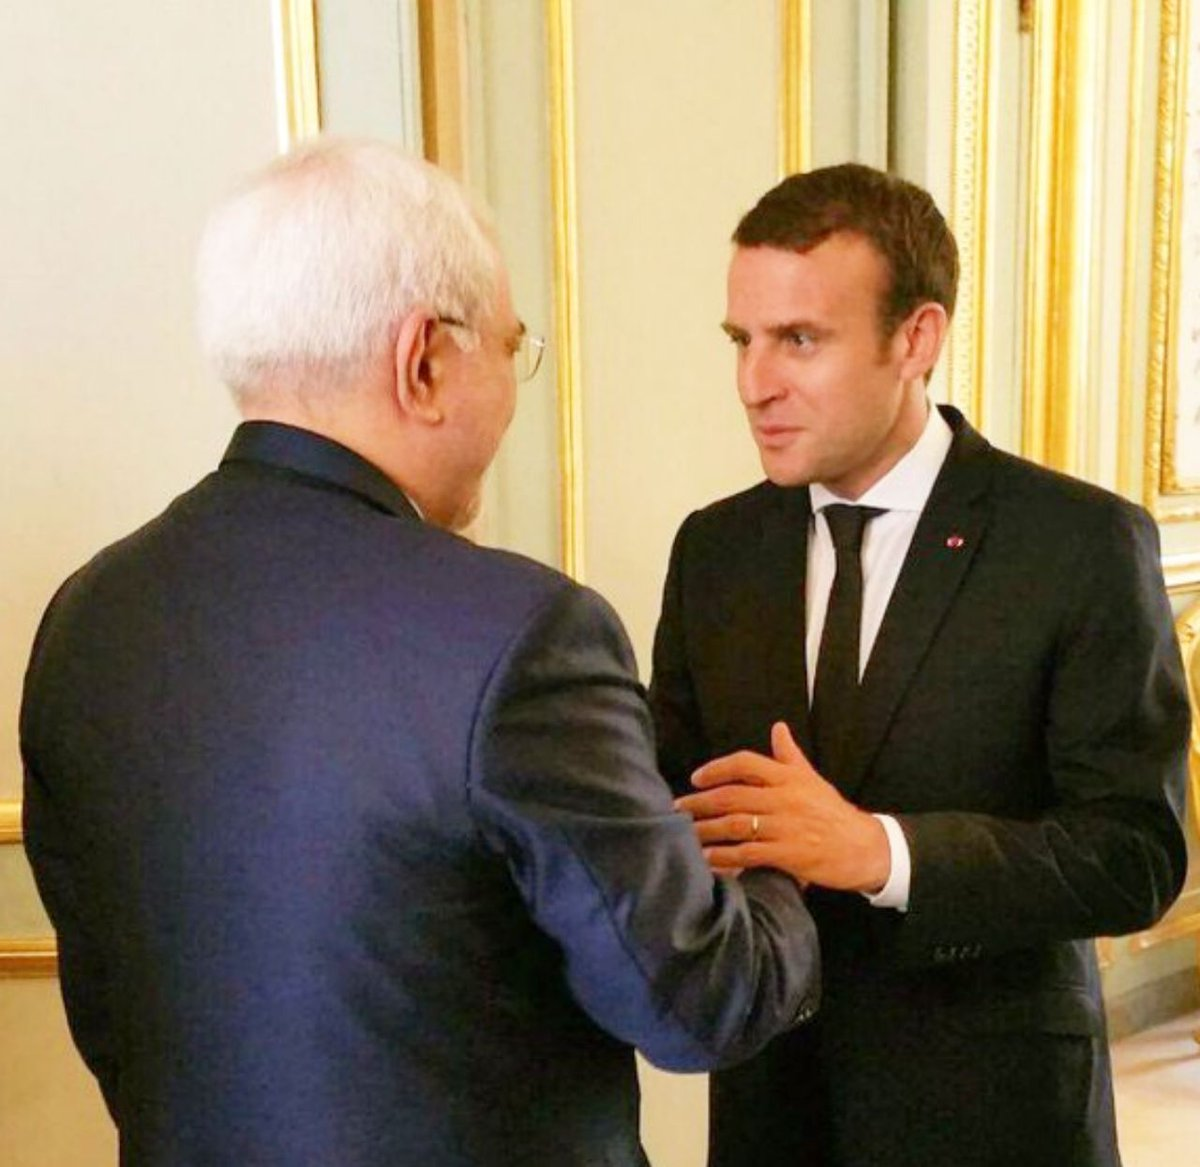 Despite US efforts to destroy diplomacy, met with French President @EmmanuelMacron and @JY_LeDriane in Paris today. Interviewed with Euronews, AFP,  & France24.Multilateralism must be preserved.Next stops Beijing, Tokyo &  KL after a day in Tehran.